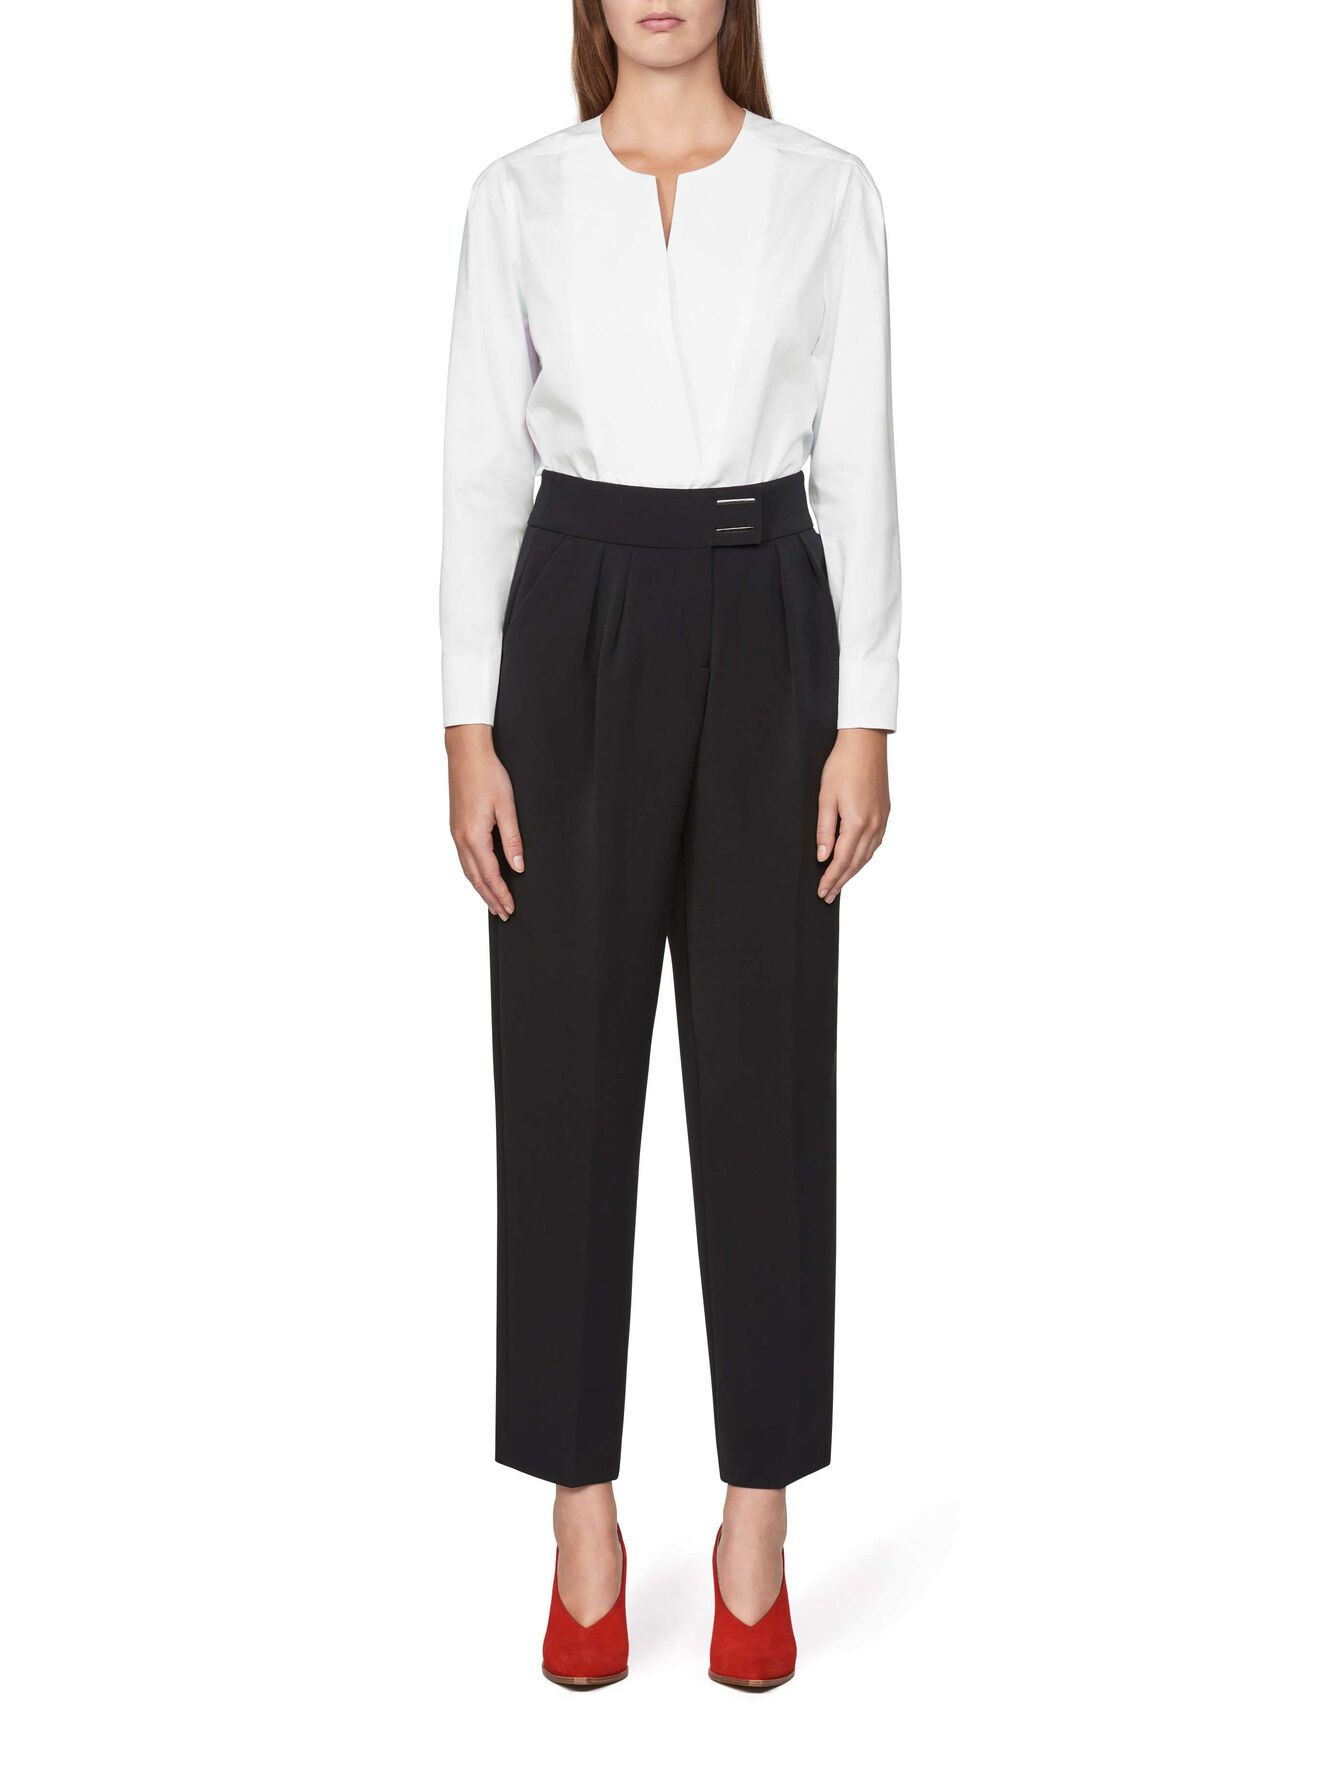 Aero Trousers in Midnight Black from Tiger of Sweden